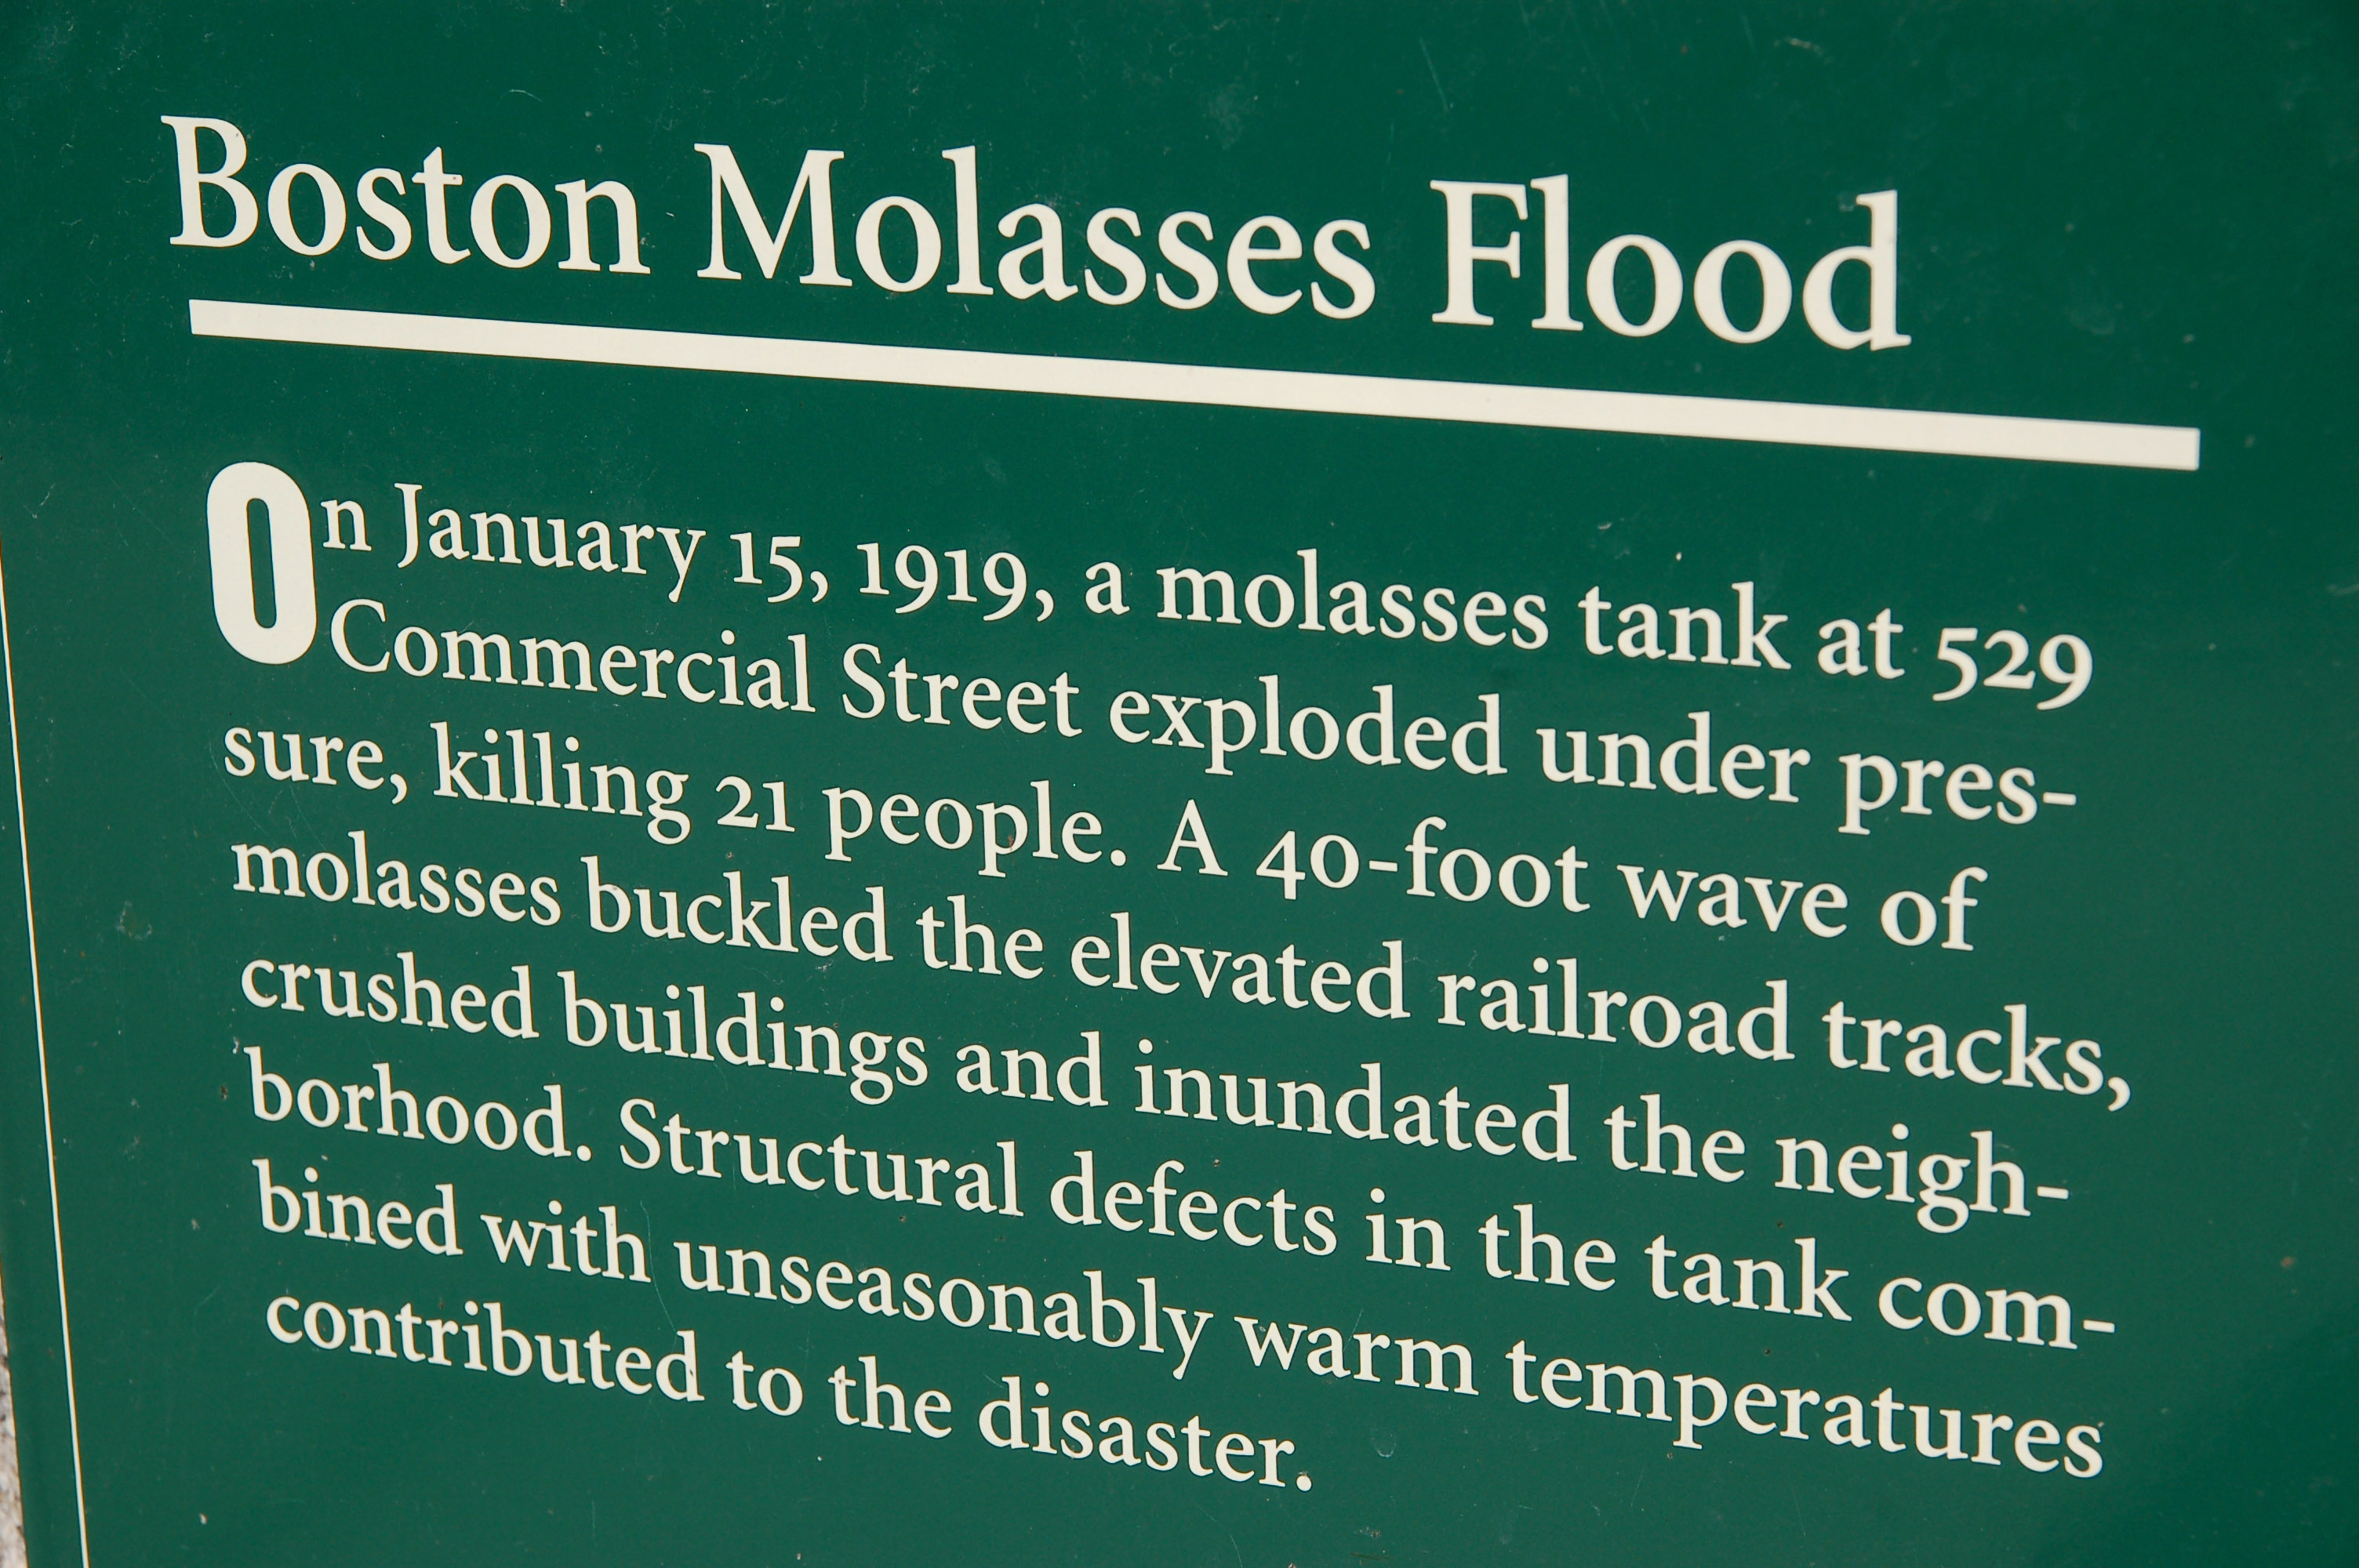 plaque on Commercial St. Boston, commemorating Molasses Flood